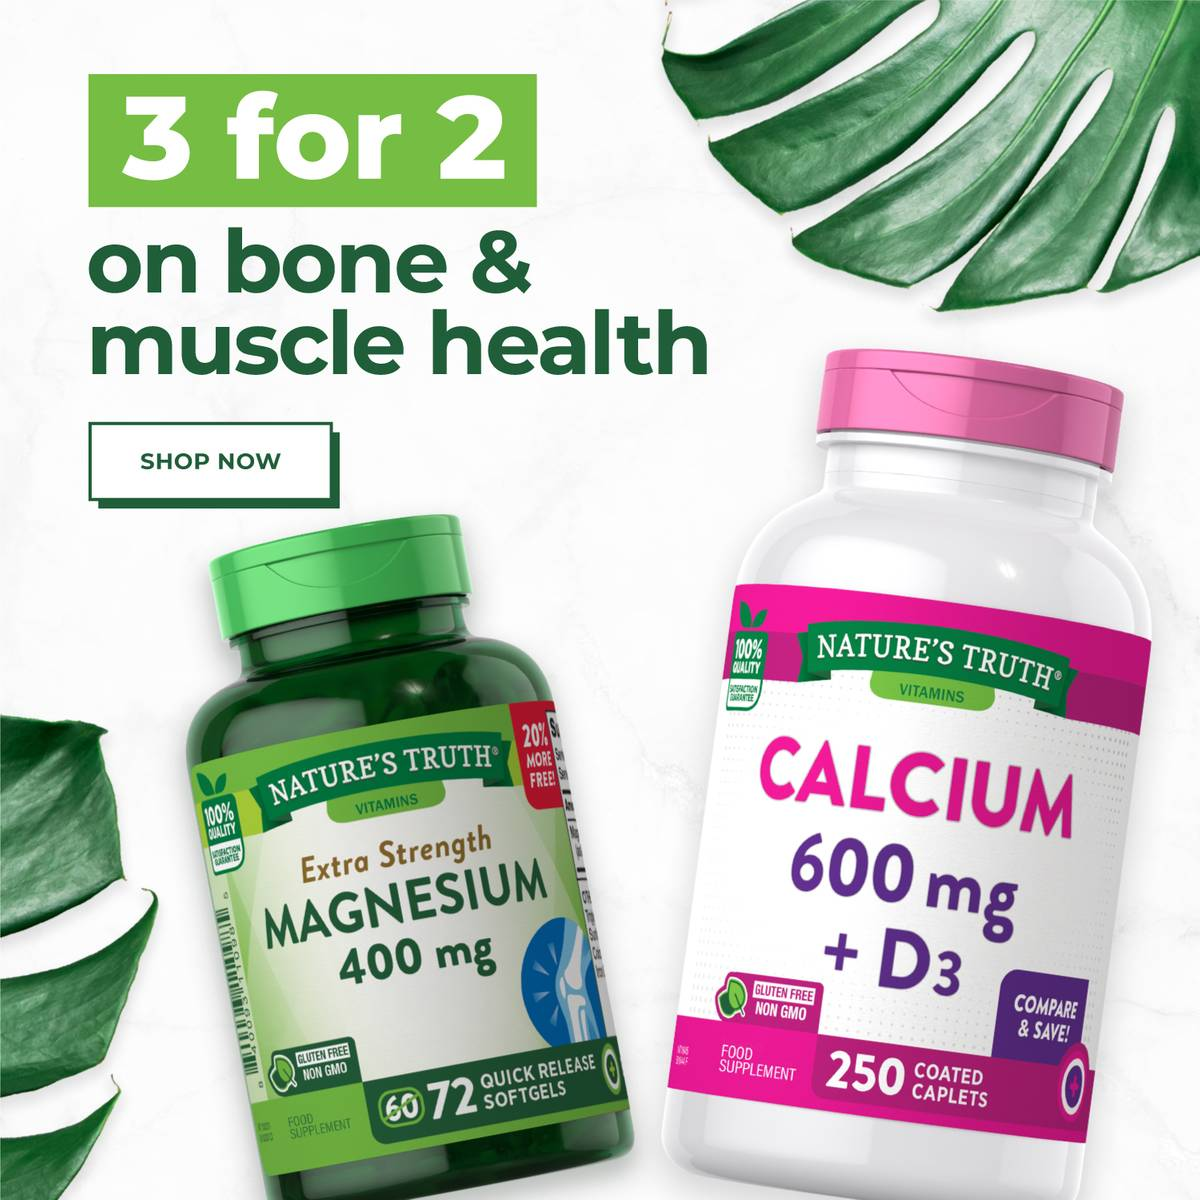 3 FOR 2 ON ALL BONE AND MUSCLE HEALTH